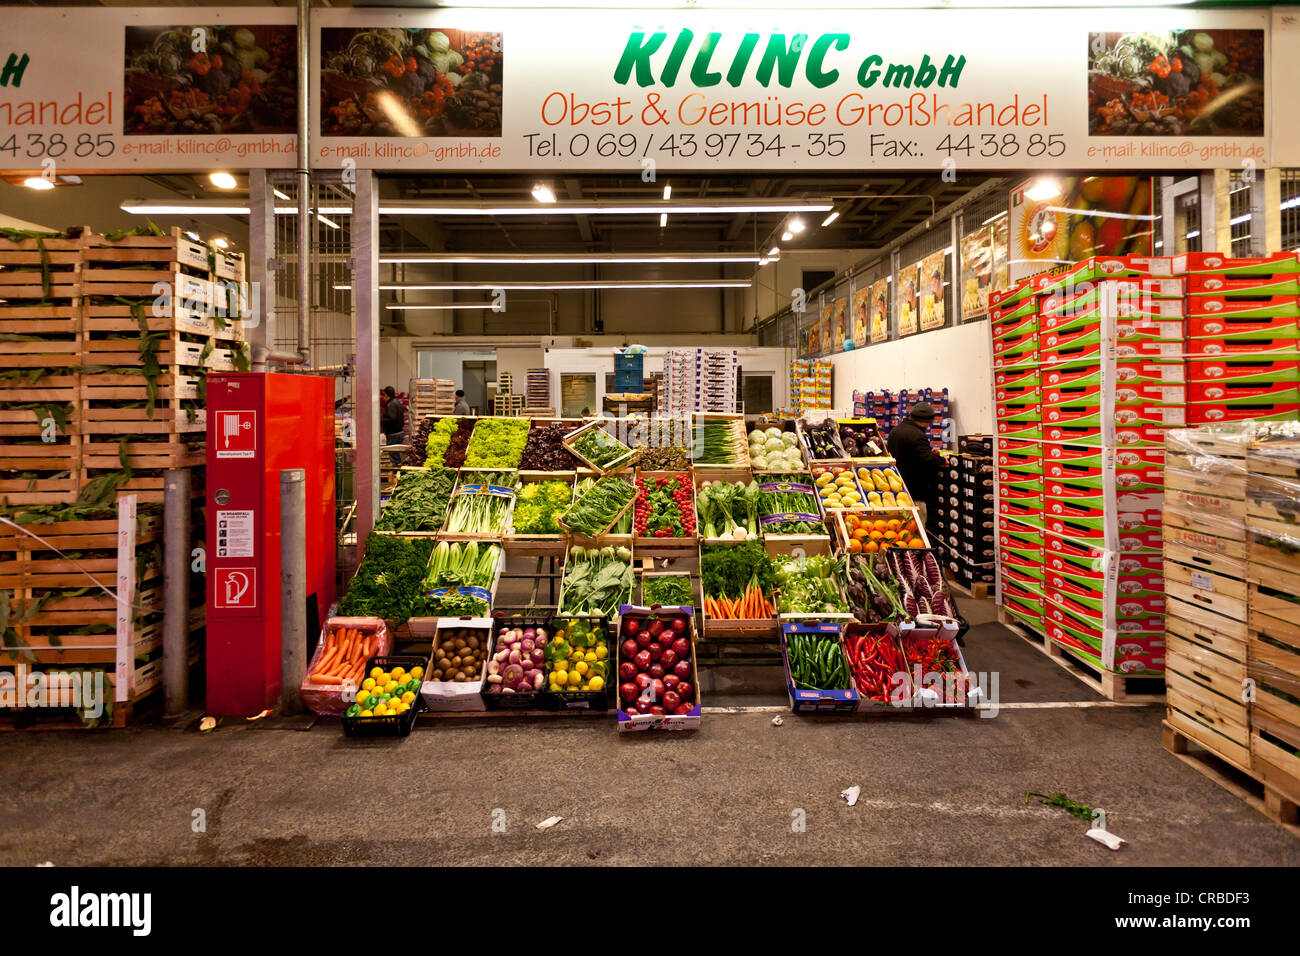 Wholesale for fresh produce, fruit and vegetables, Frankfurt